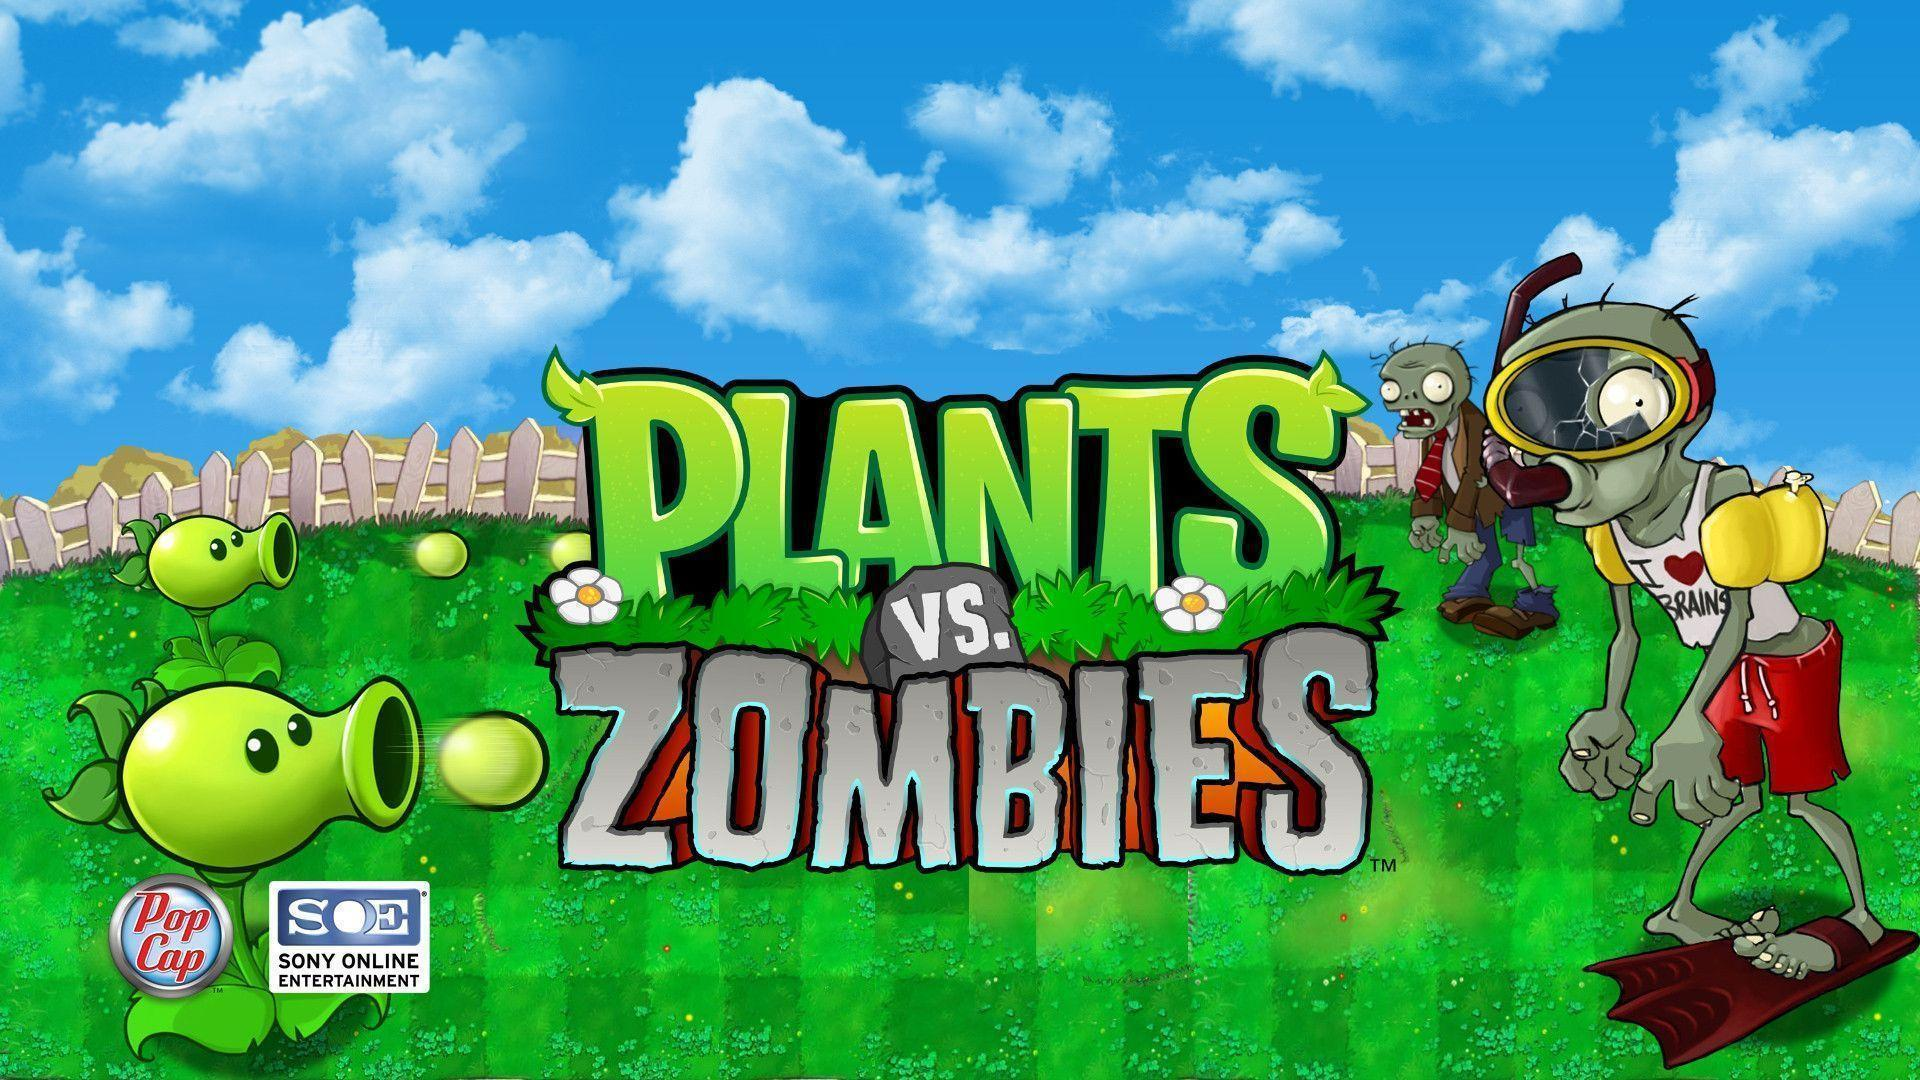 9 Of The Best Plants vs Zombies Wallpapers | CrispMe